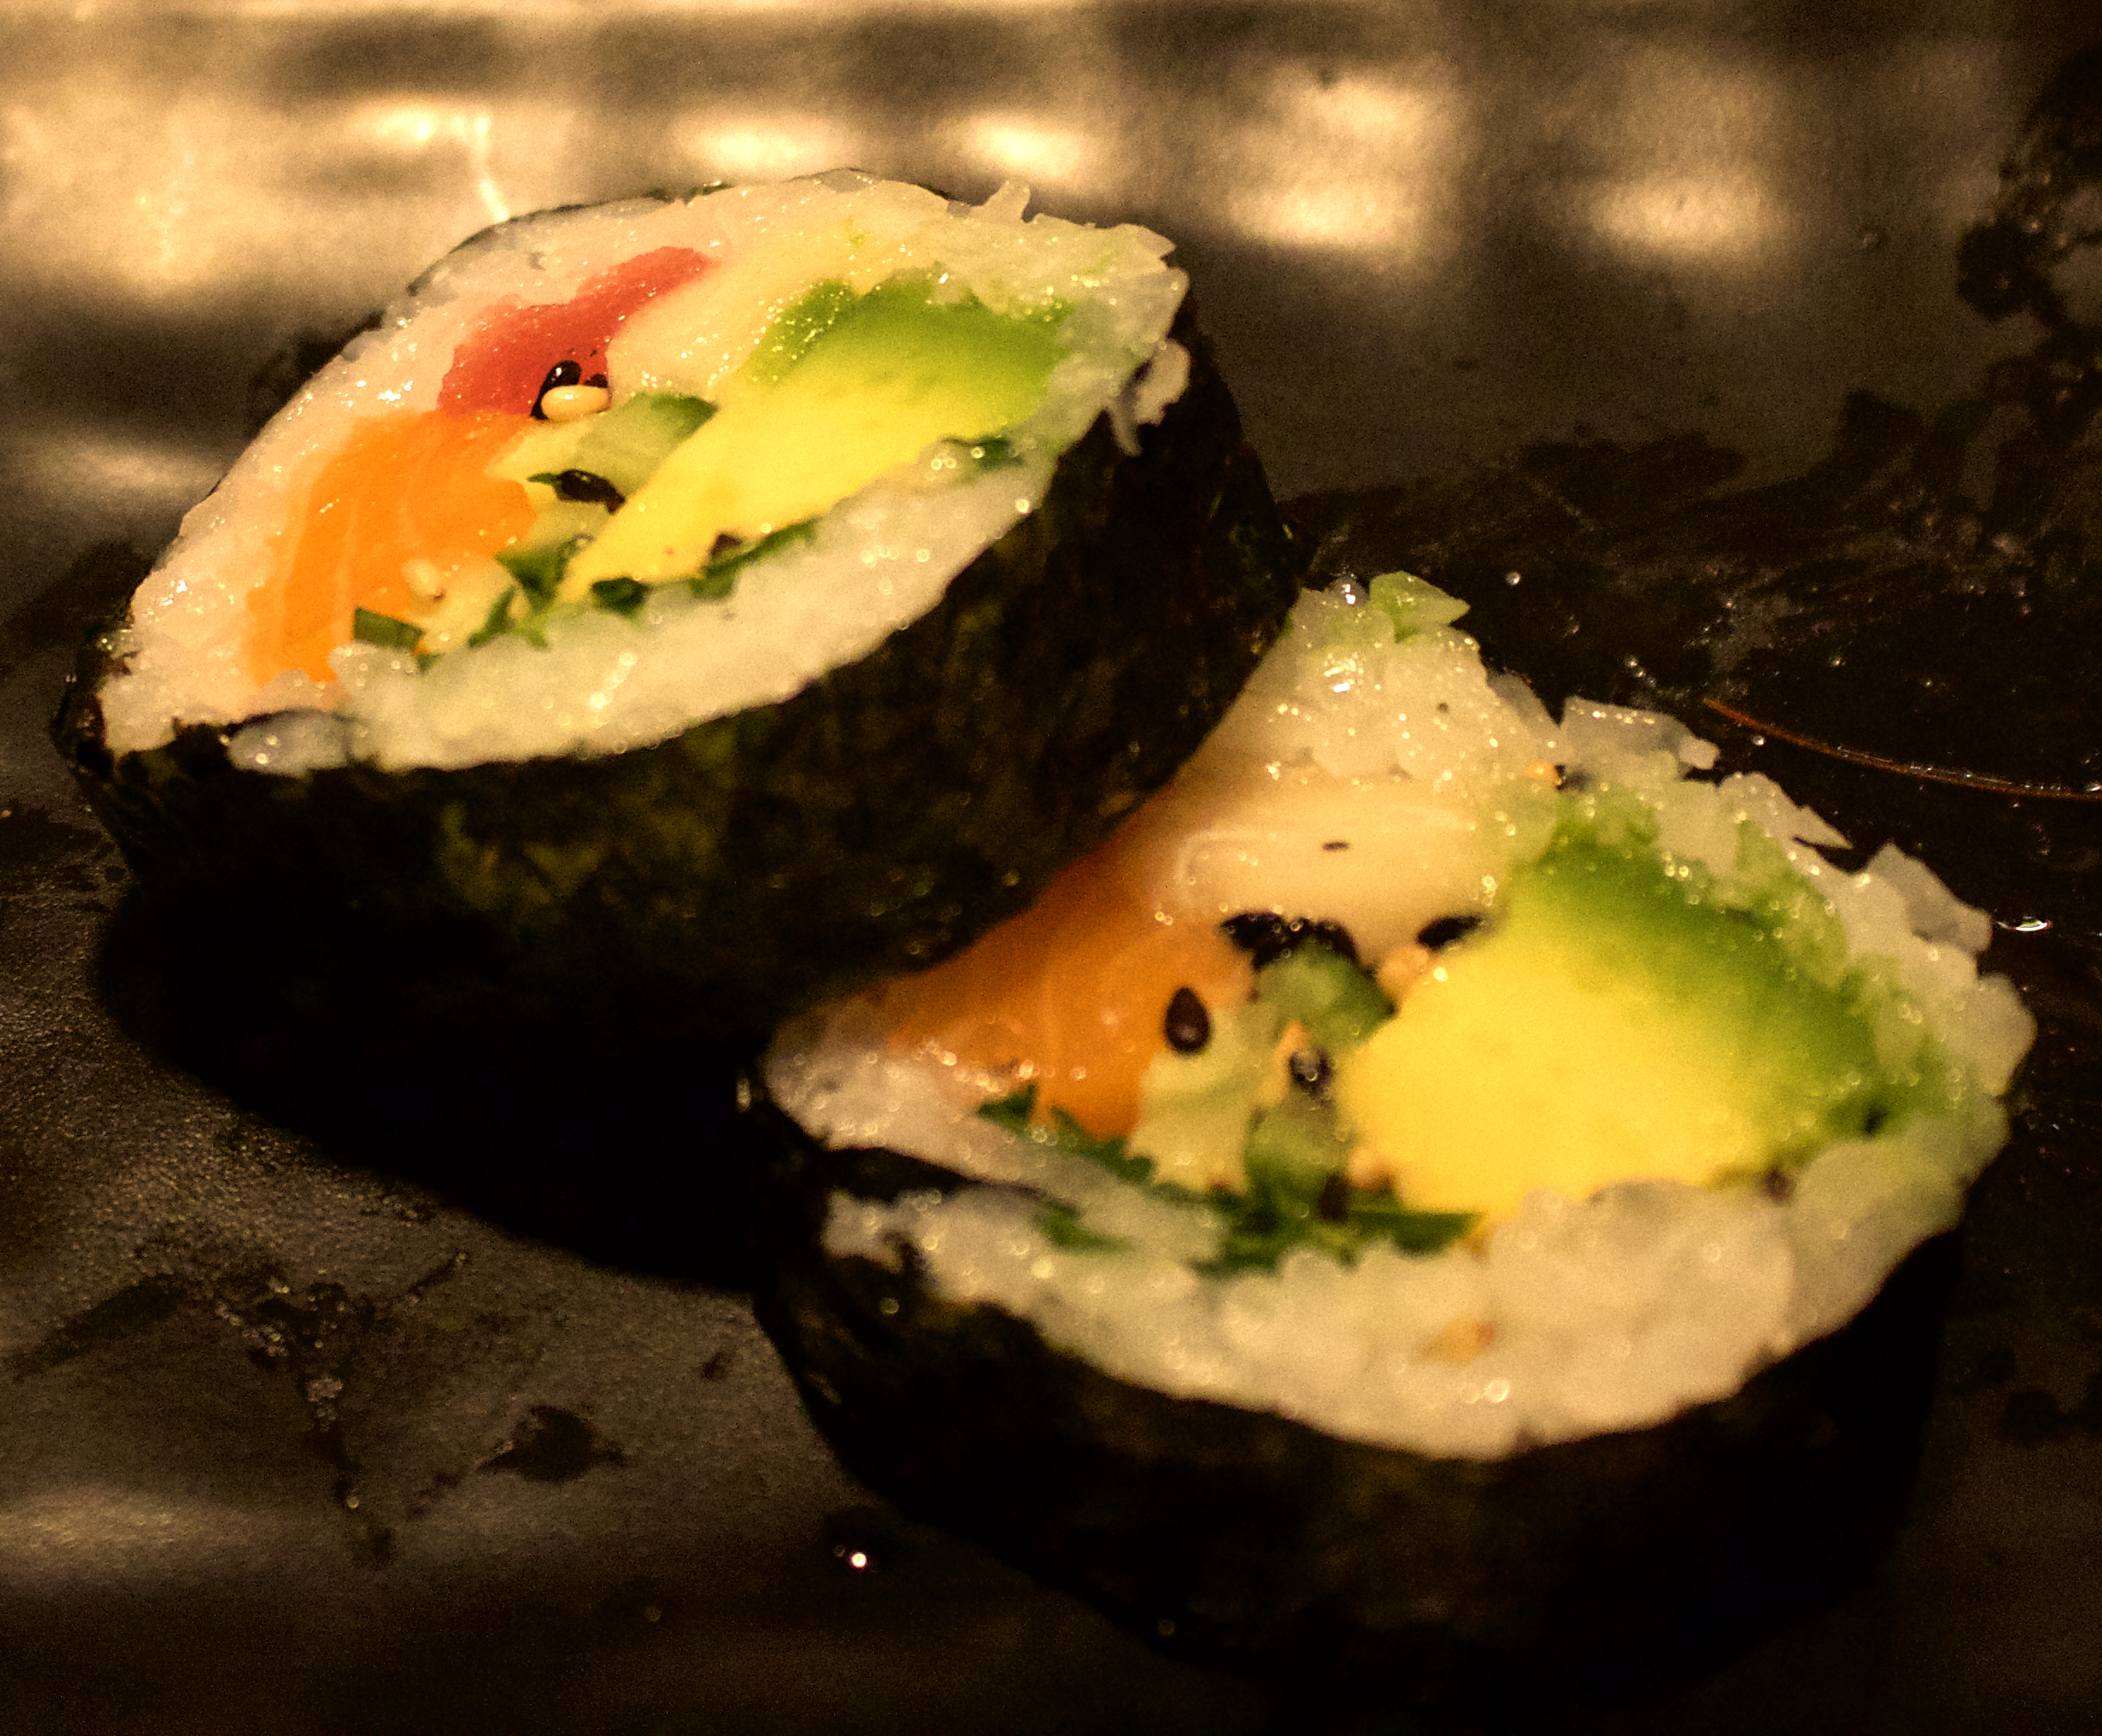 There's three different types of fish stuffed into this roll.